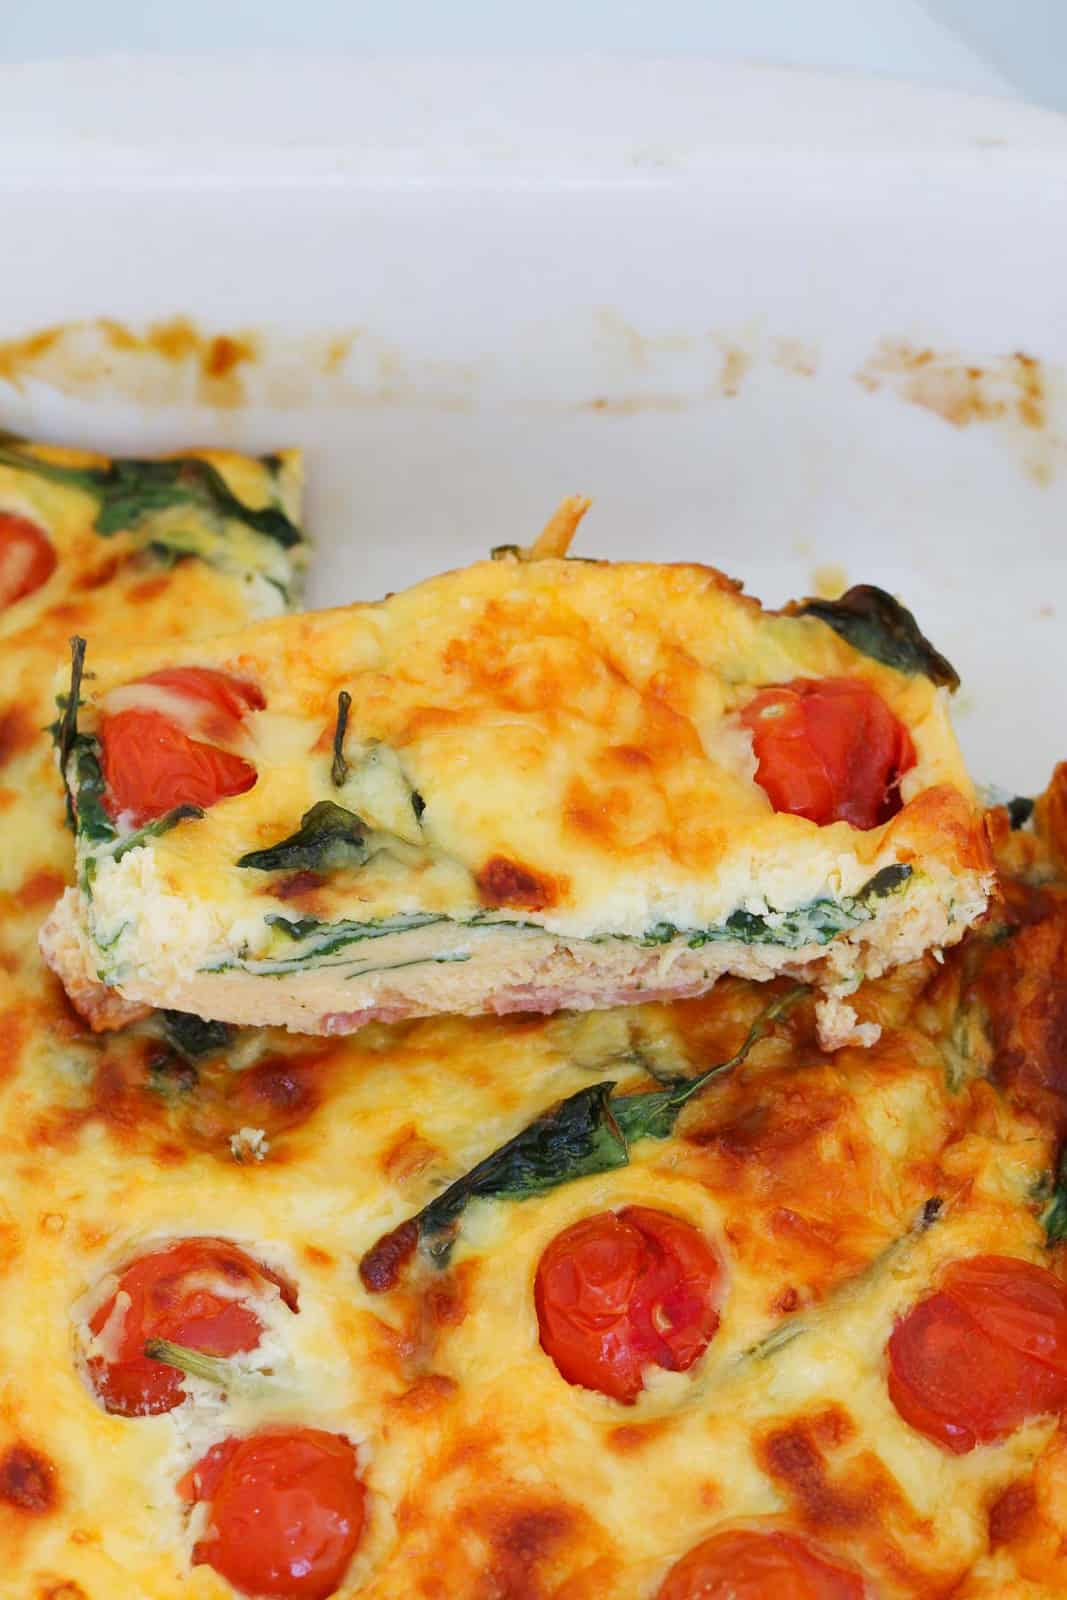 A close up of a piece of baked frittata with bacon, spinach and tomato.